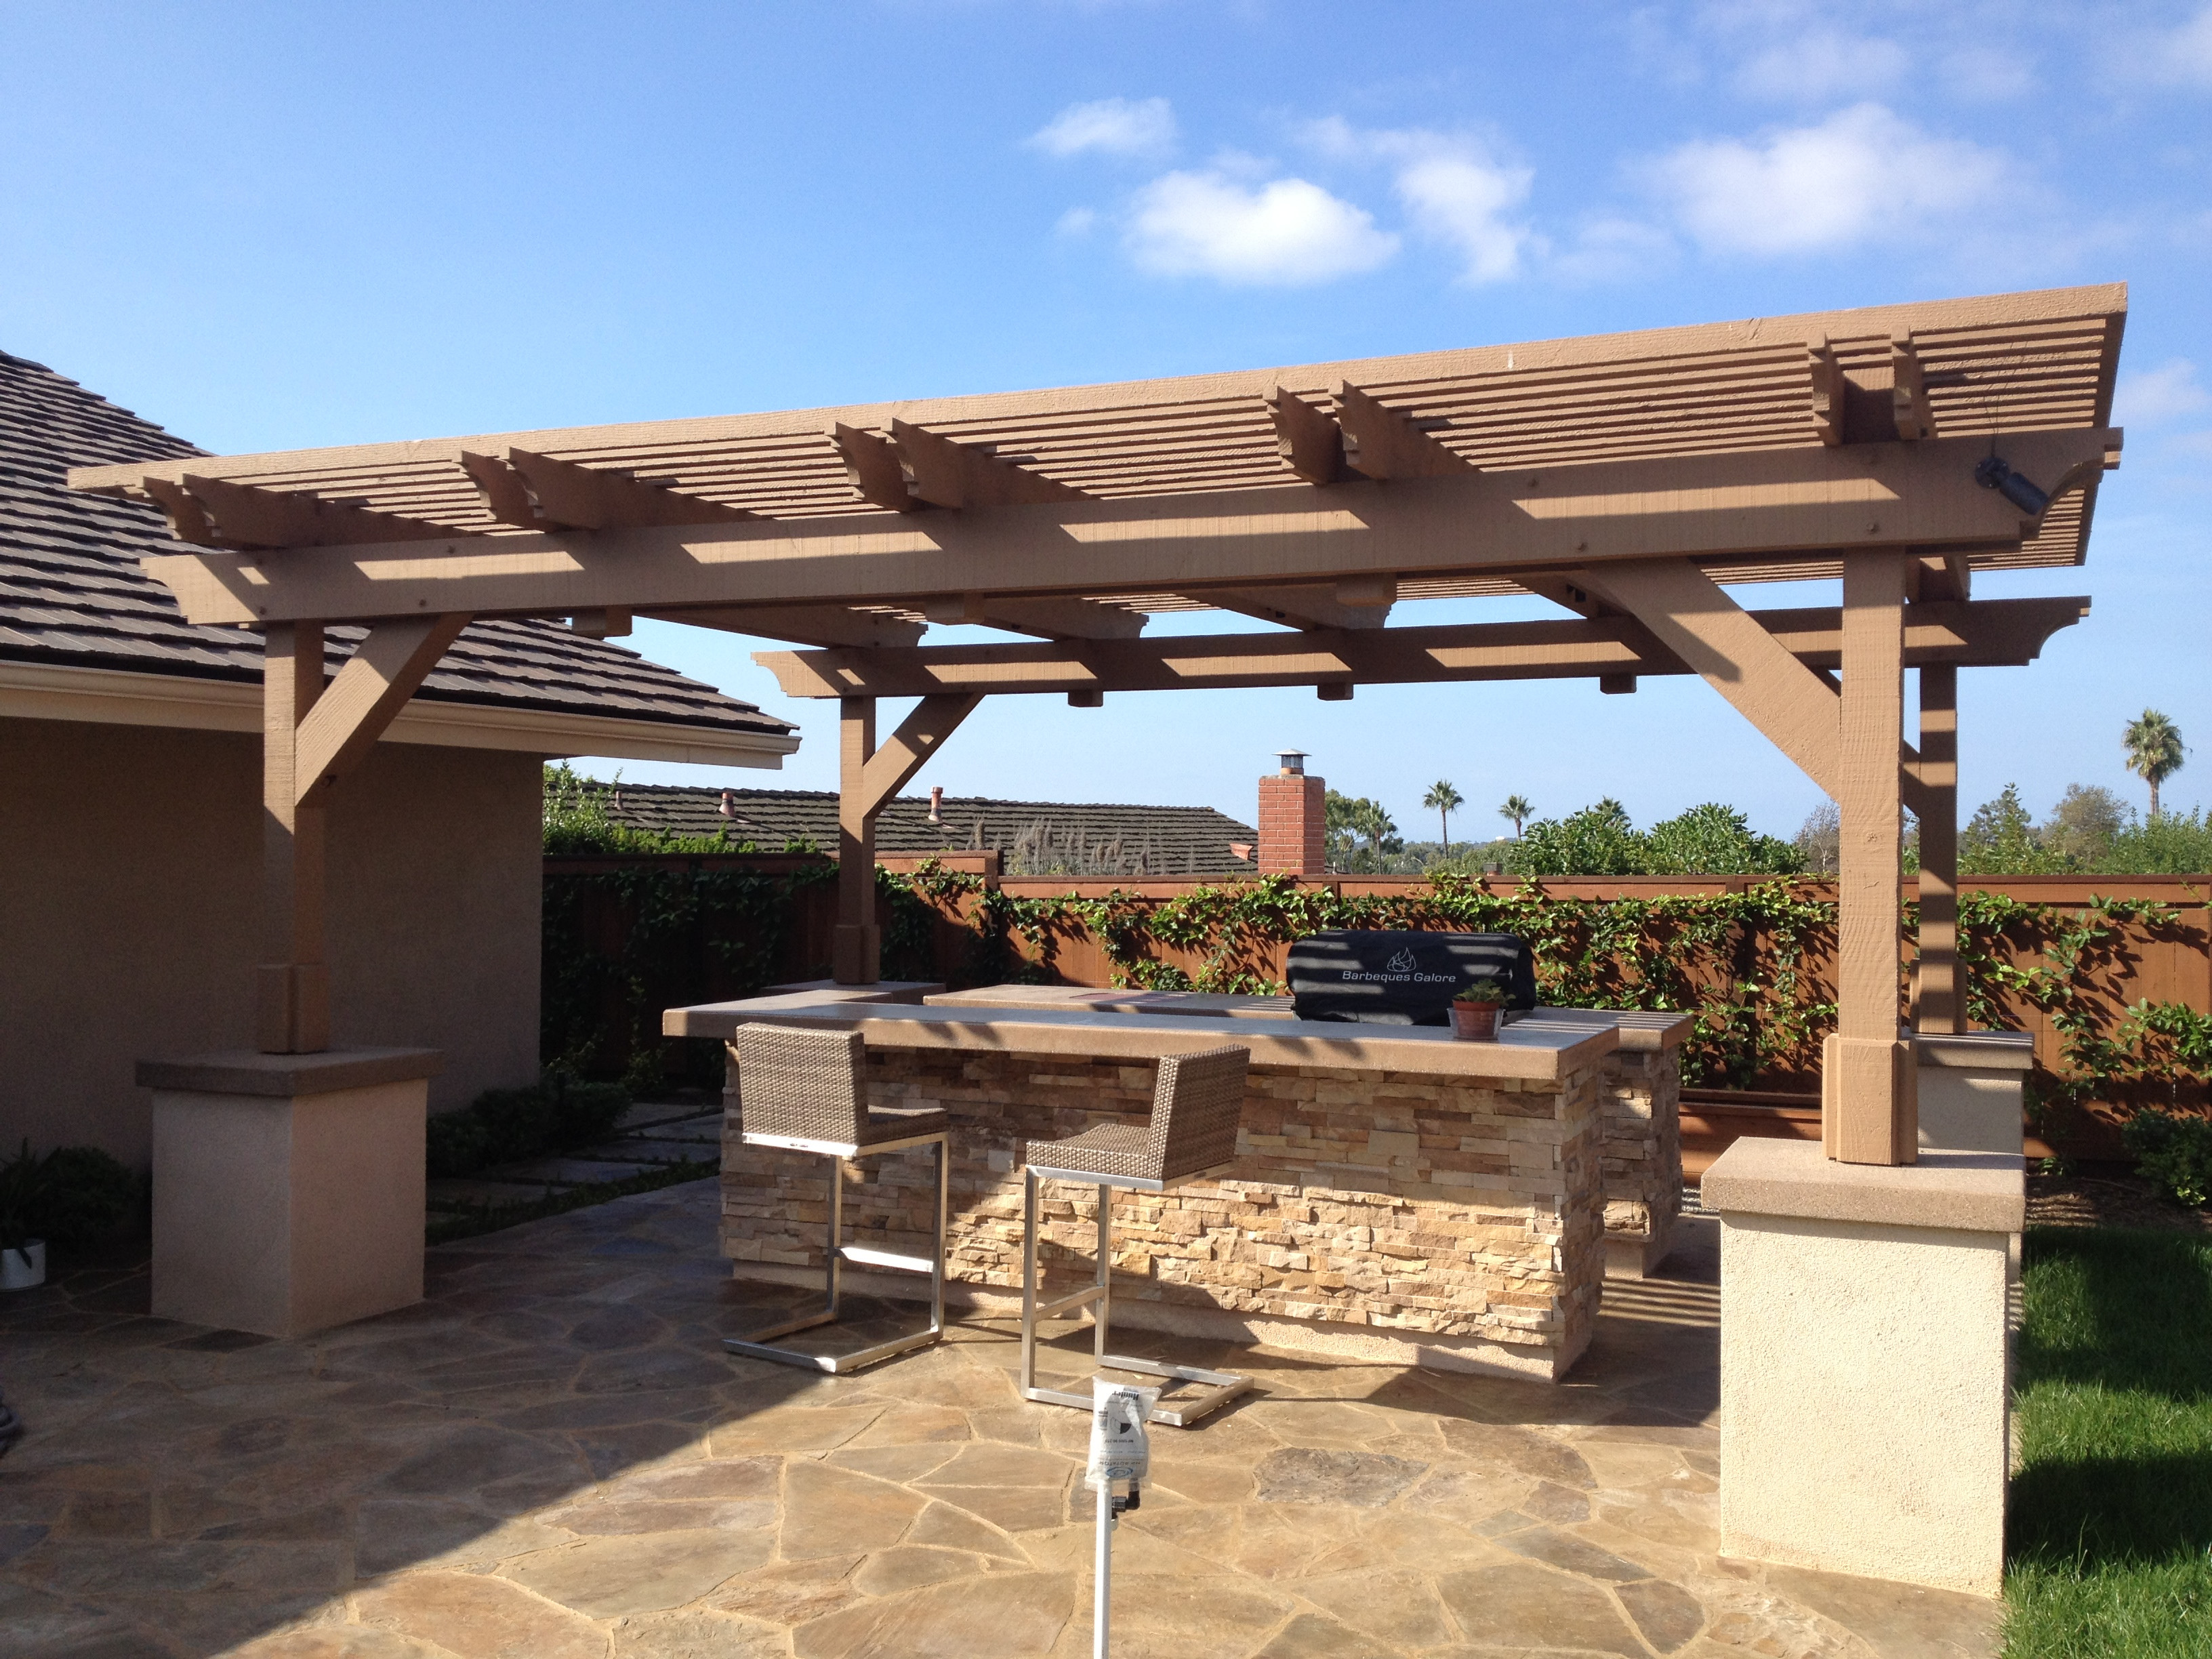 Best ideas about Free Standing Patio Cover . Save or Pin Free Standing Patio Covers Cornerstone Patio Covers Now.